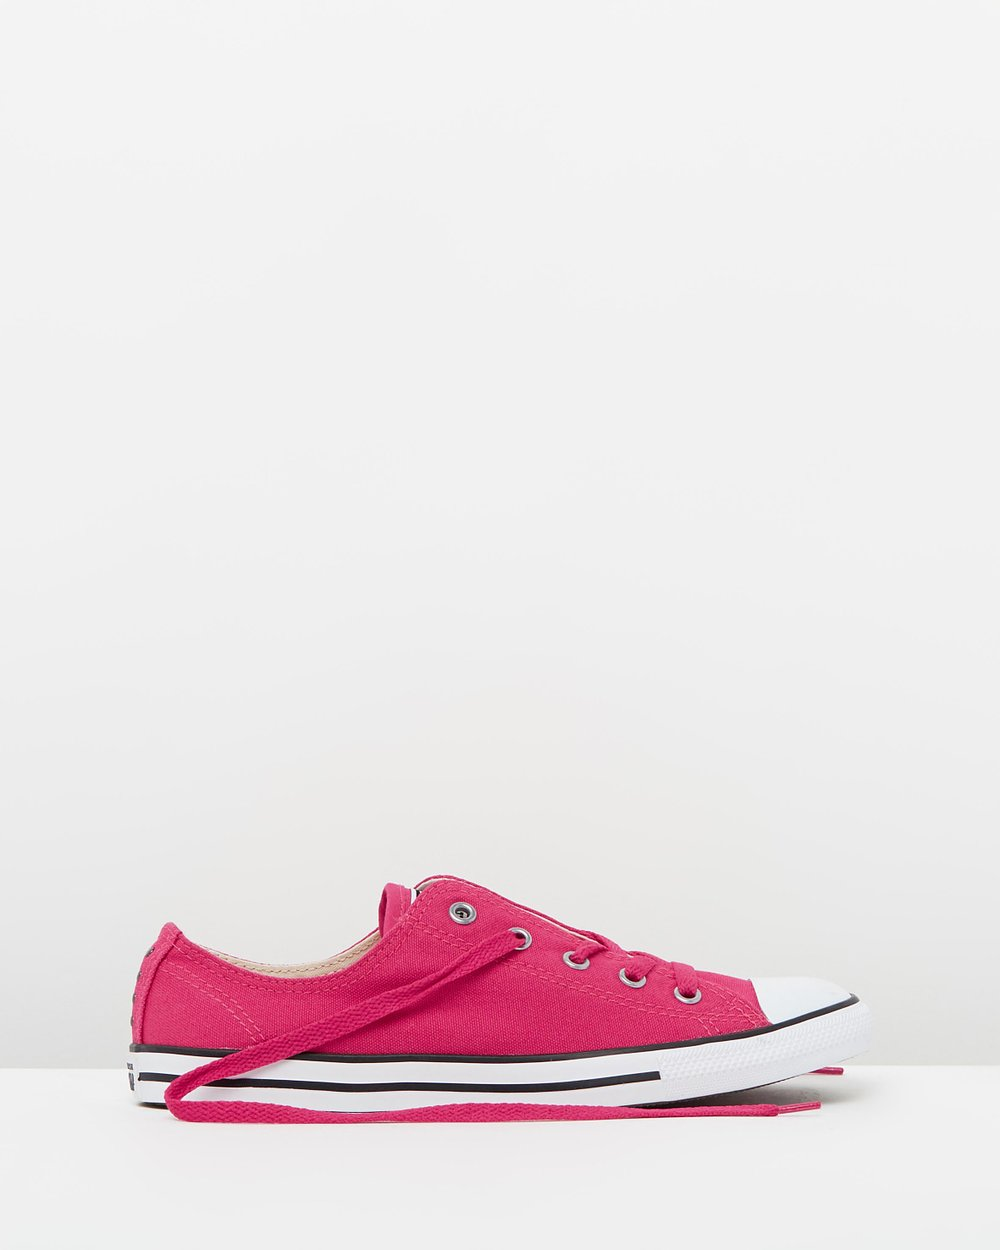 bcc056a1d547 Chuck Taylor All Star Dainty Ox - Women s by Converse Online